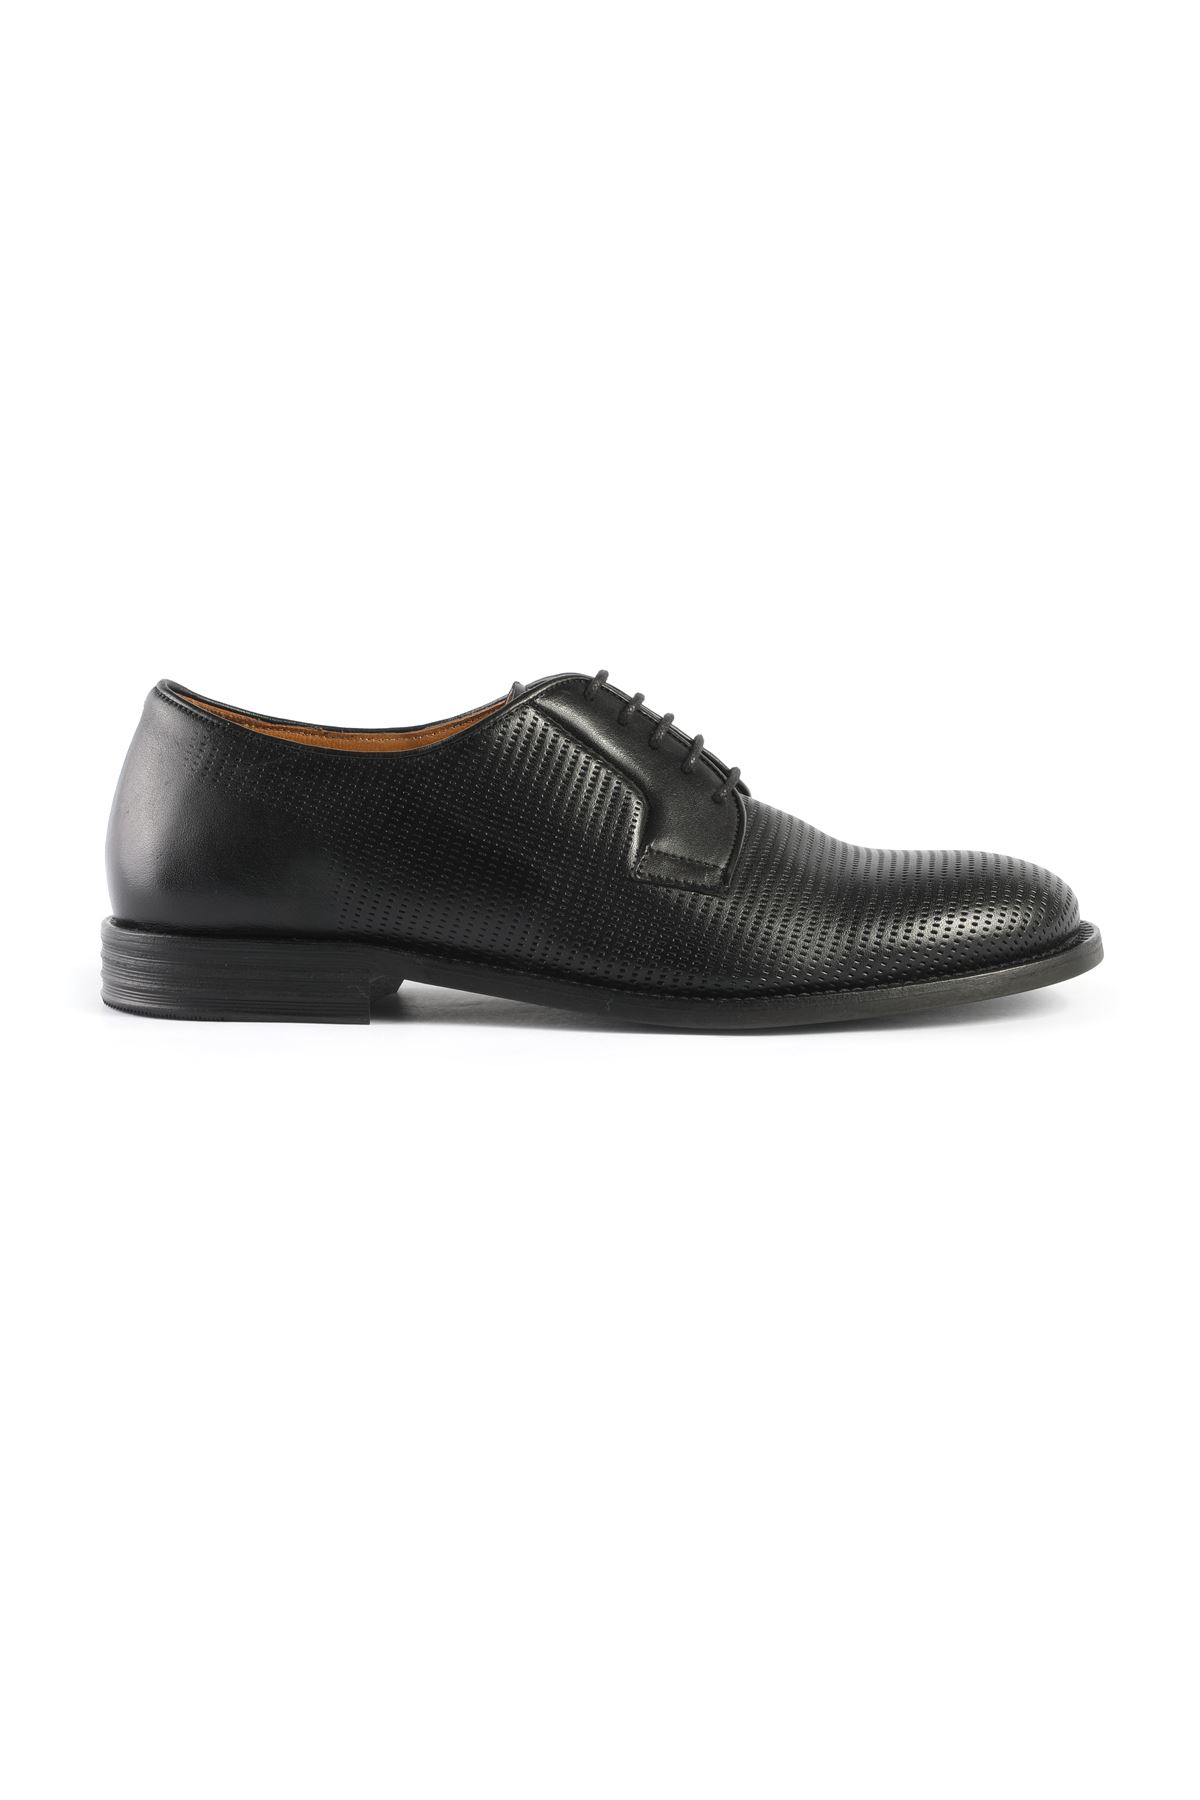 Libero L3210 Black Classic Shoes